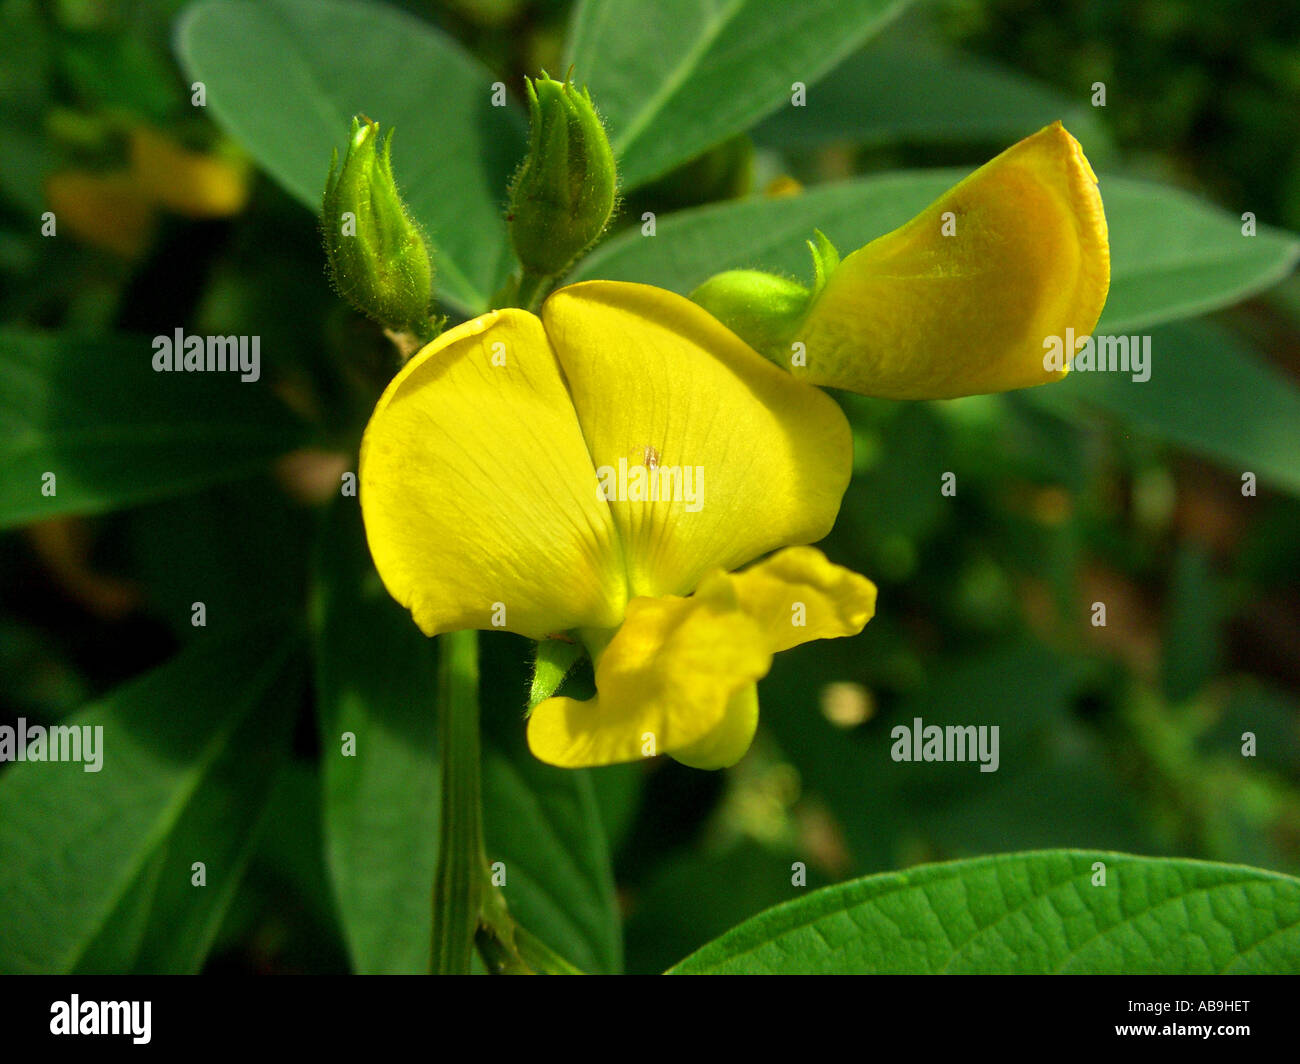 Yellow Shrub Pea Flower Stock Photos Yellow Shrub Pea Flower Stock